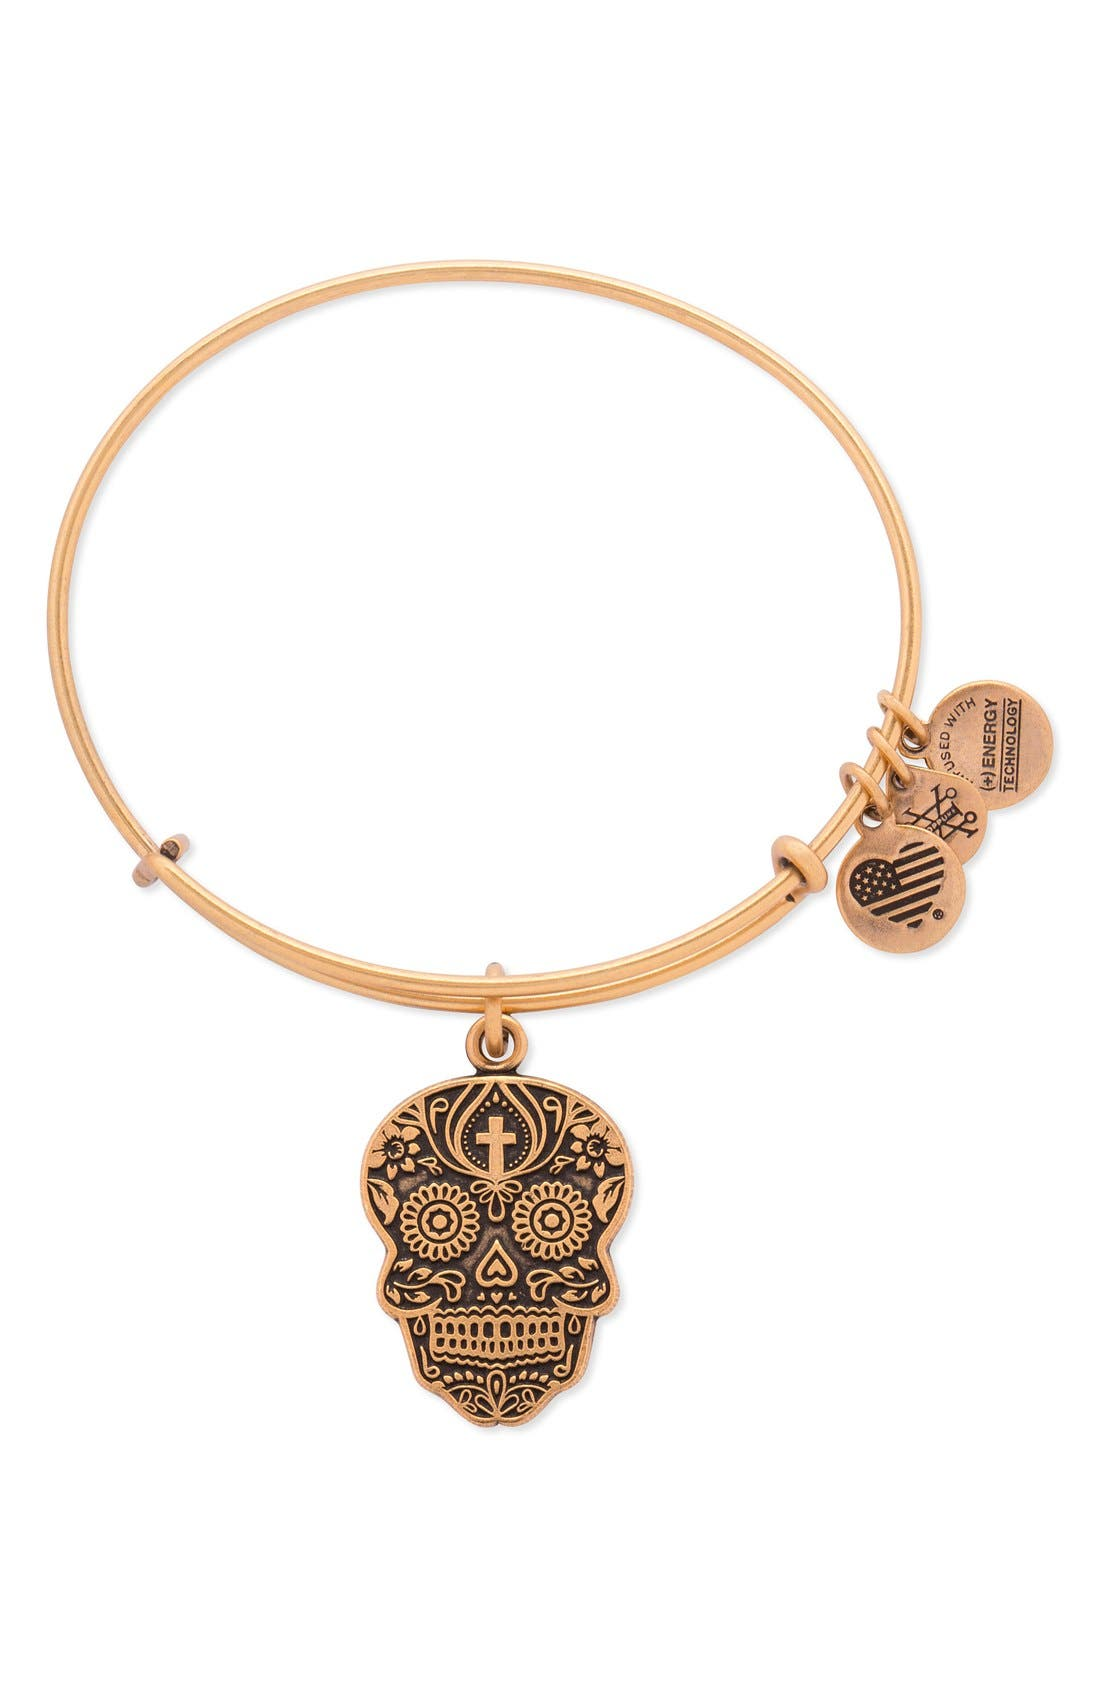 ALEX AND ANI 'Calavera' Adjustable Wire Bangle